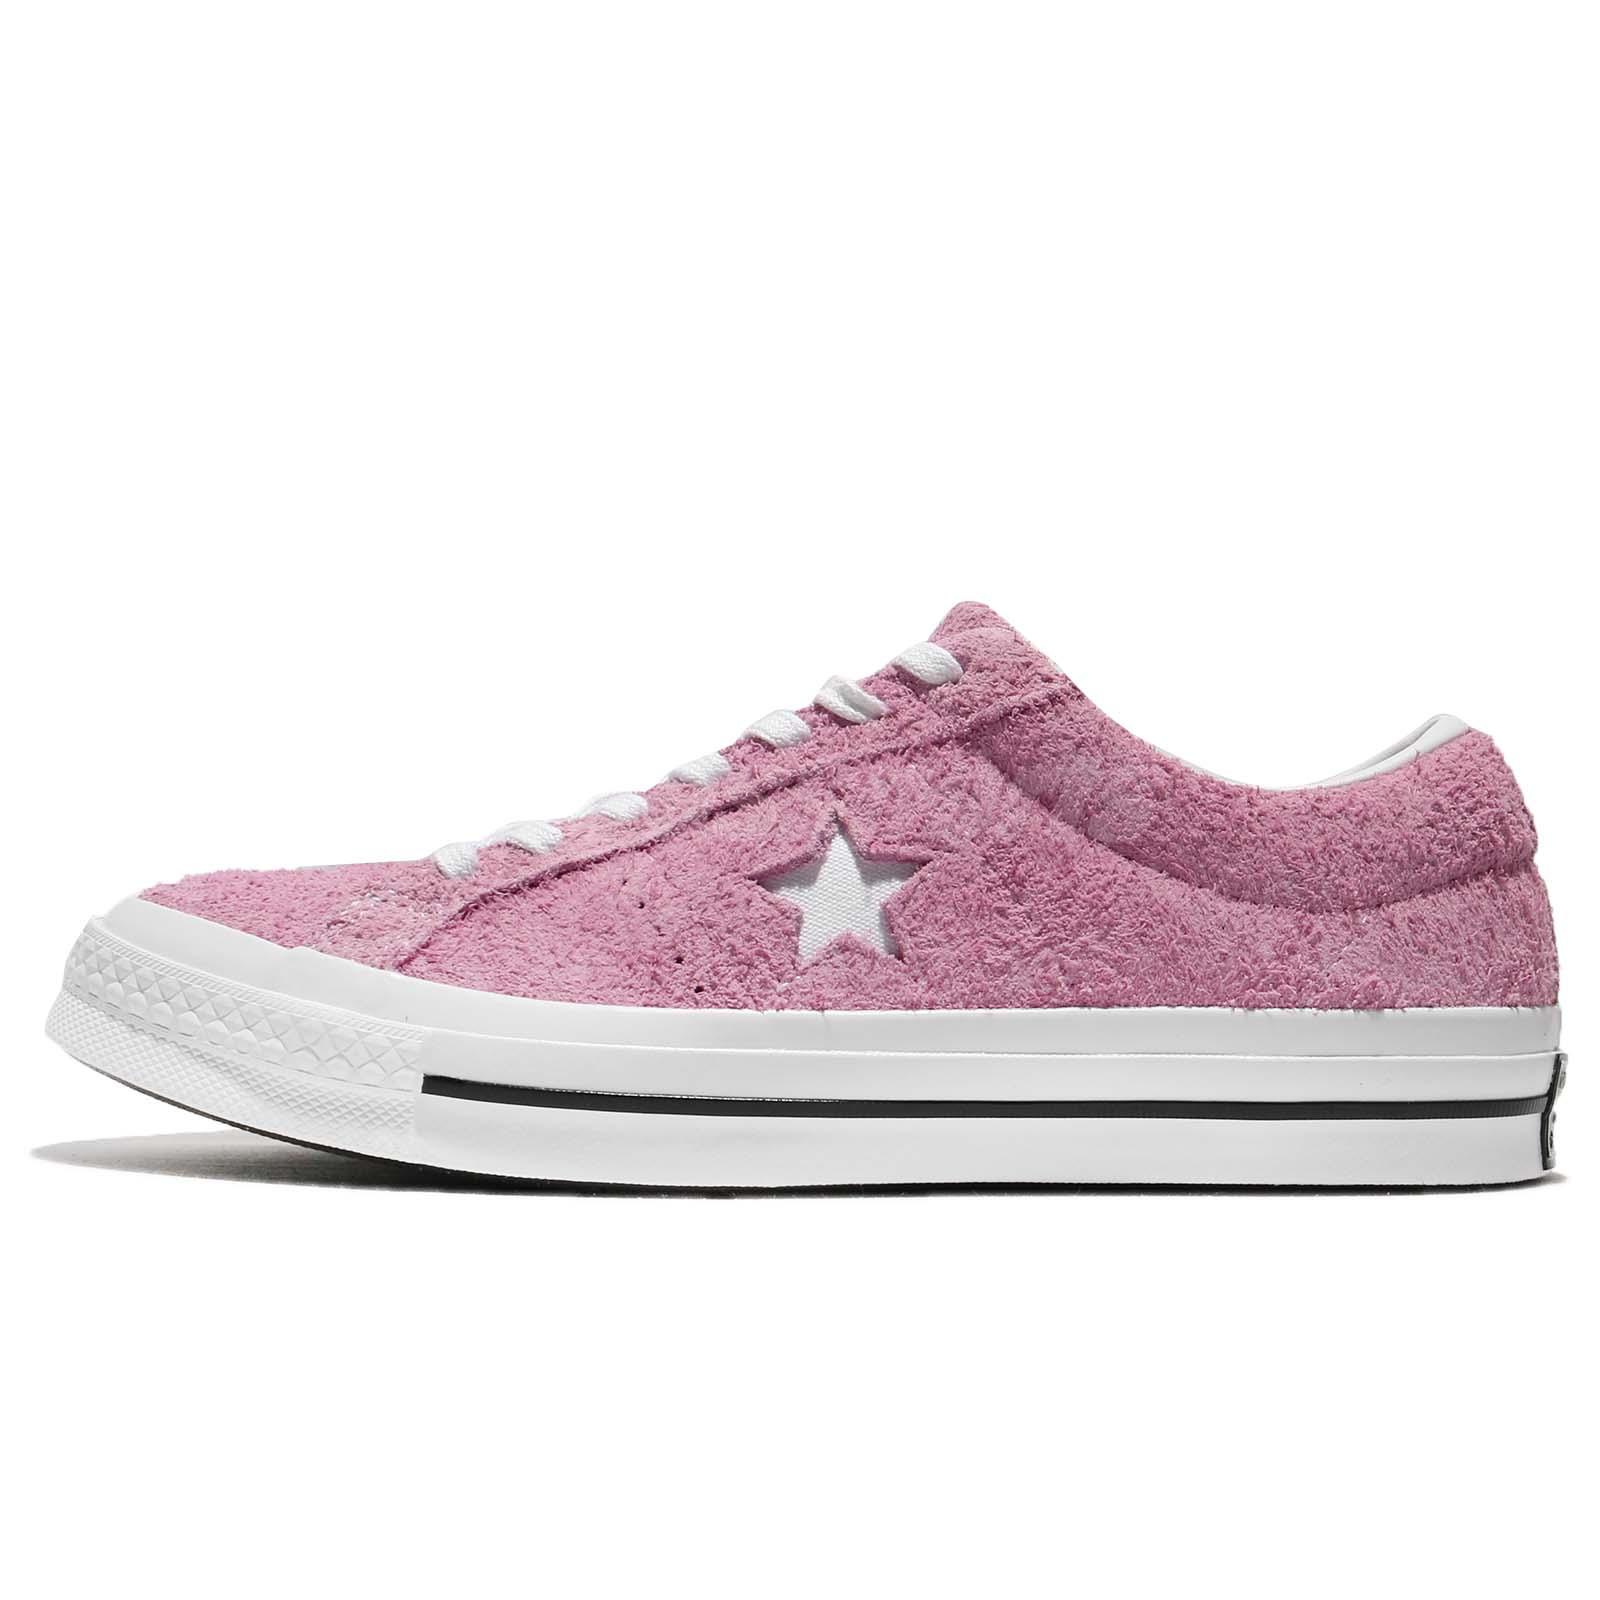 e5c15f4a3eba8f Converse One Star Suede Pink White Men Women Classic Shoes Sneakers 159492C